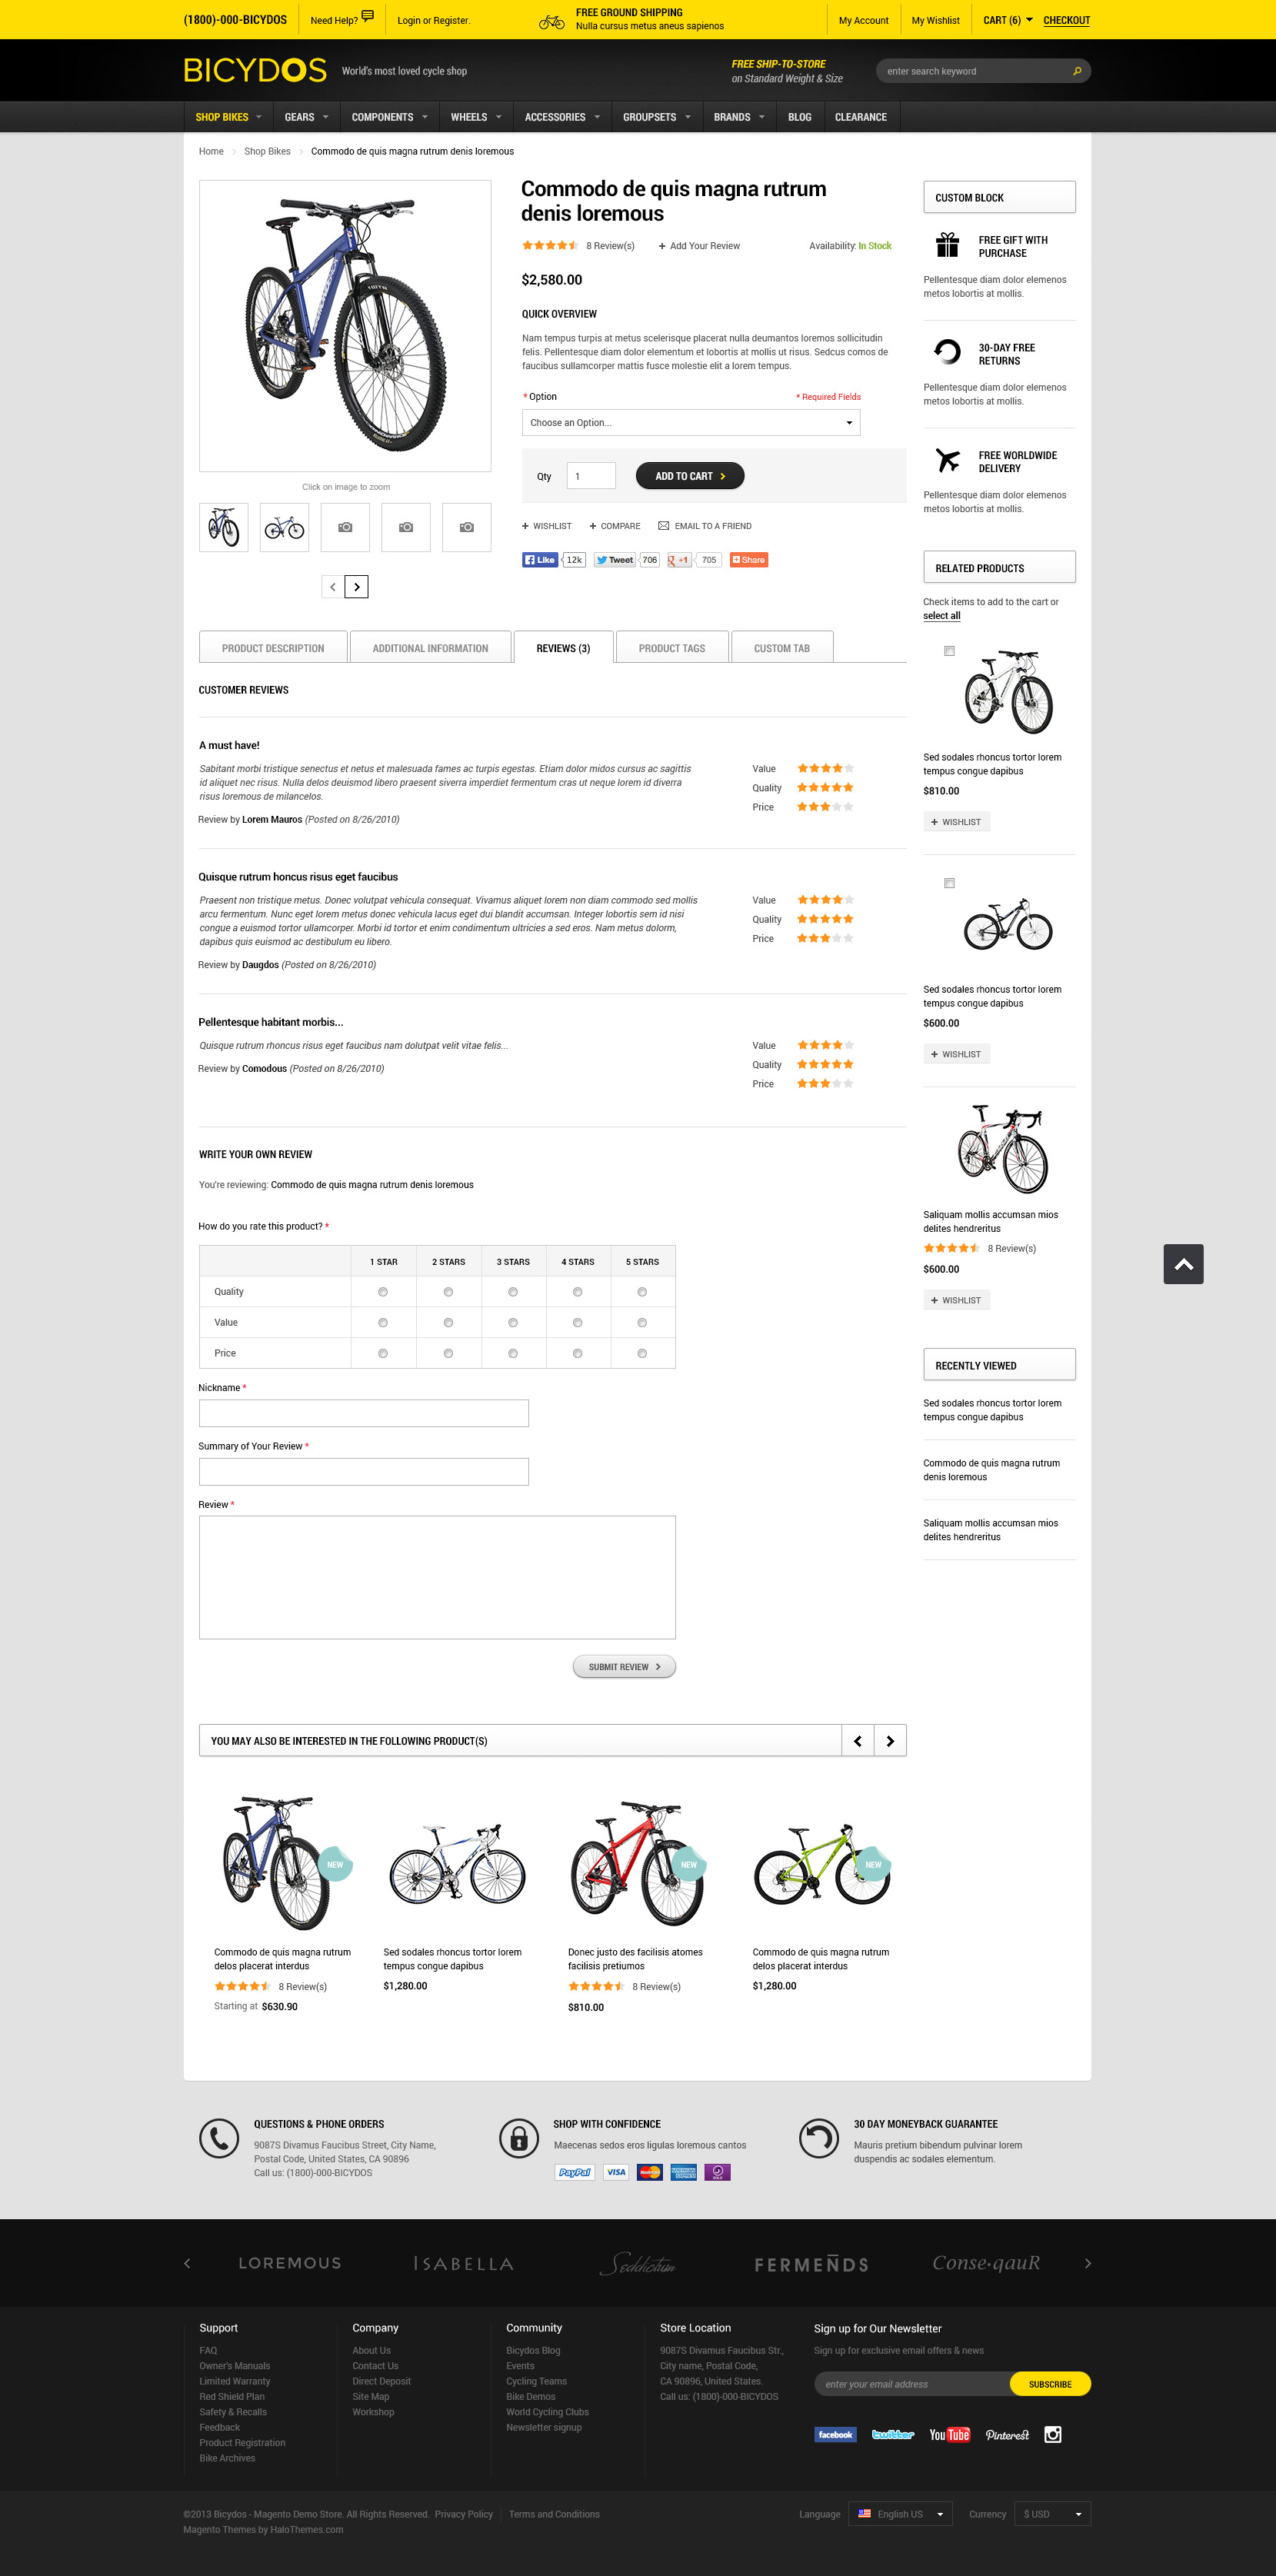 Halo Bicydos - Bike Store Responsive Magento Template (1.9.x ready)